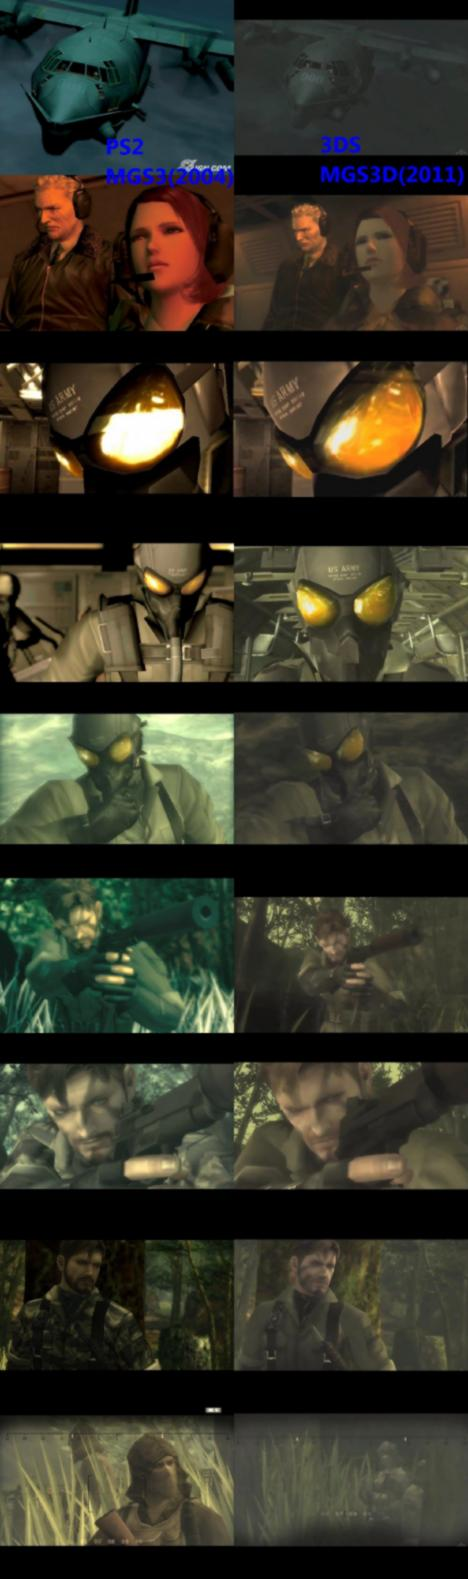 101741__468x_metal-gear-solid-3ds-comparison-2